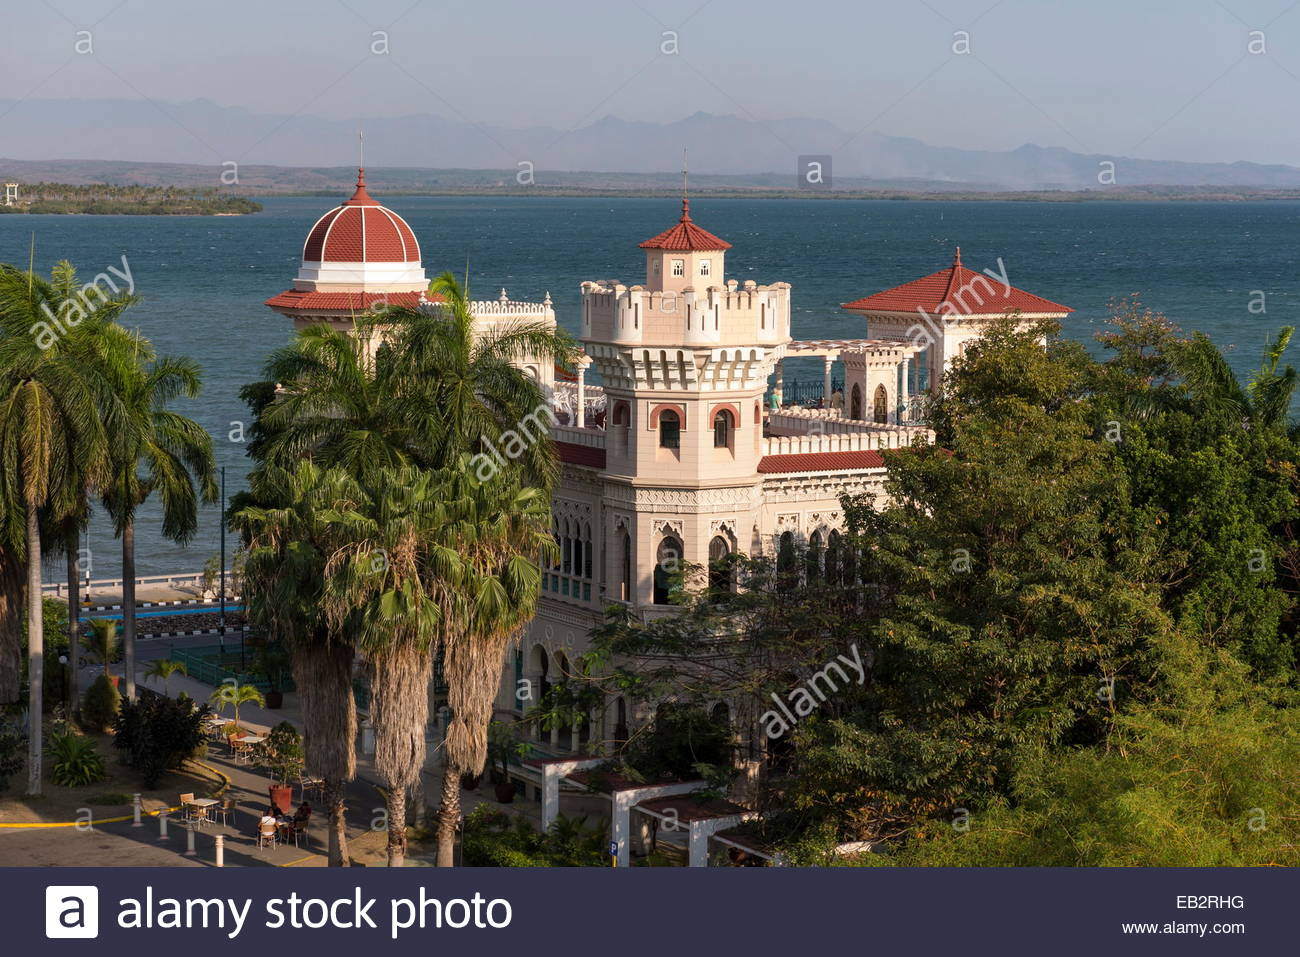 The Palacio del Valle an early 20th century mansion, which now houses restaurants and bars. - Stock Image